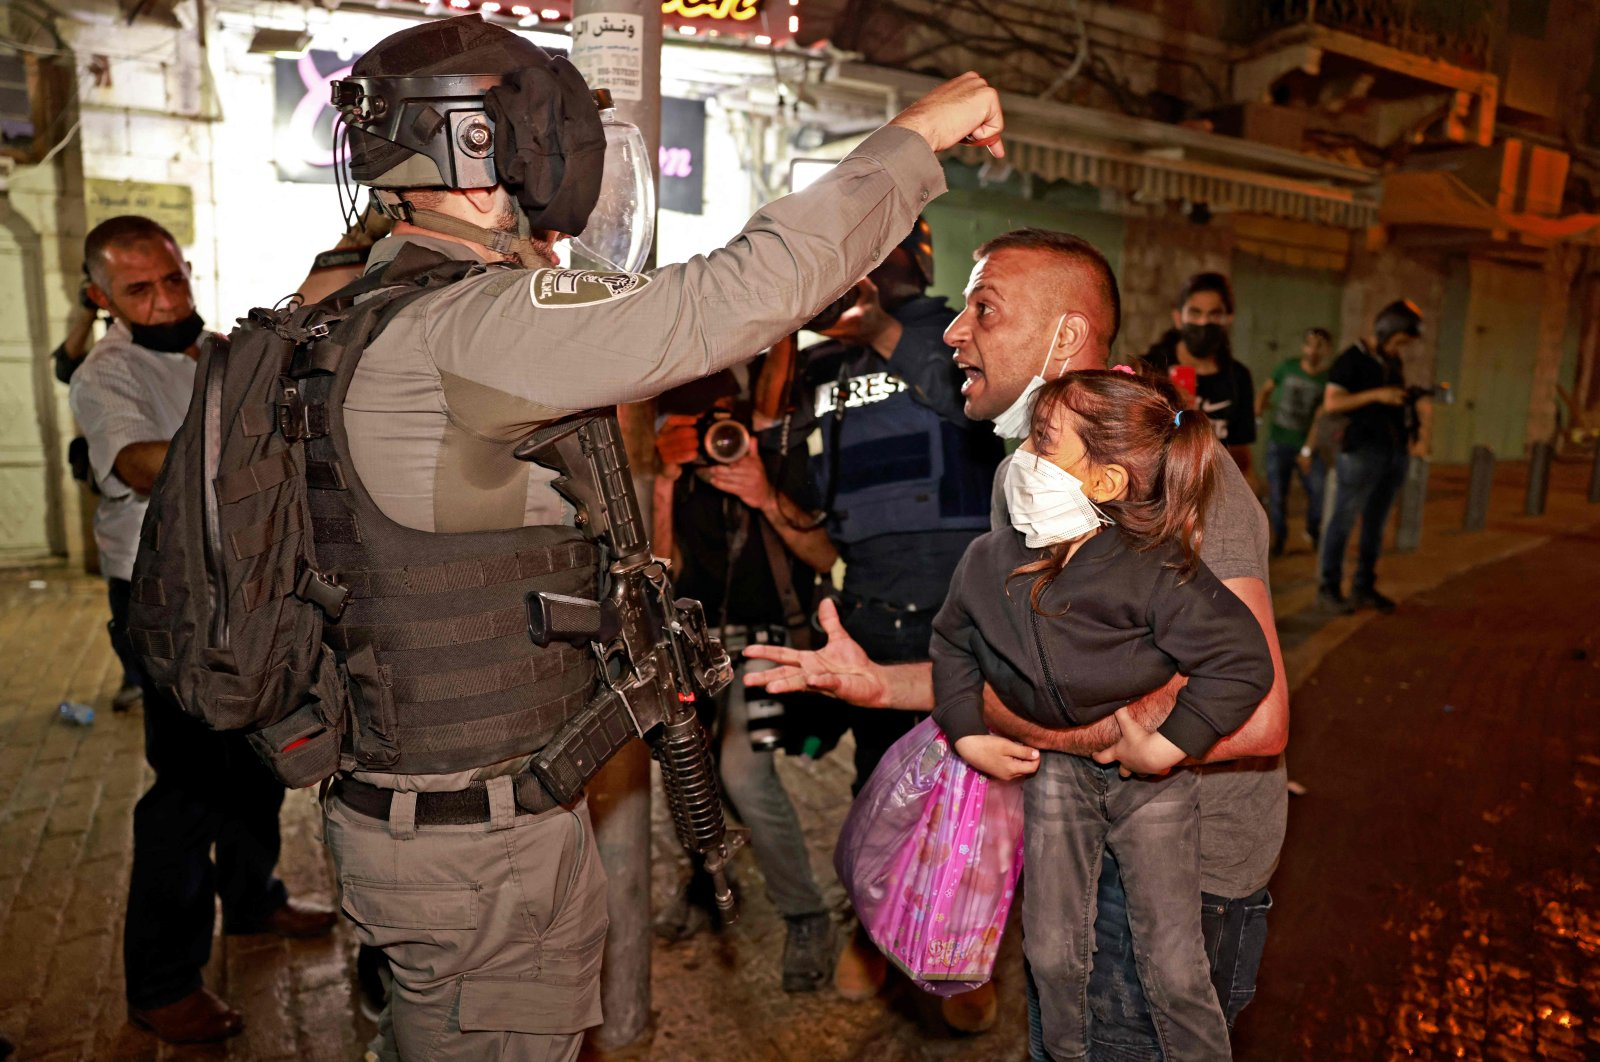 A member of Israeli security forces argues with a Palestinian protester holding a child outside the Damascus Gate in Jerusalem's Old City, East Jerusalem, occupied Palestine, May 9, 2021. (AFP Photo)